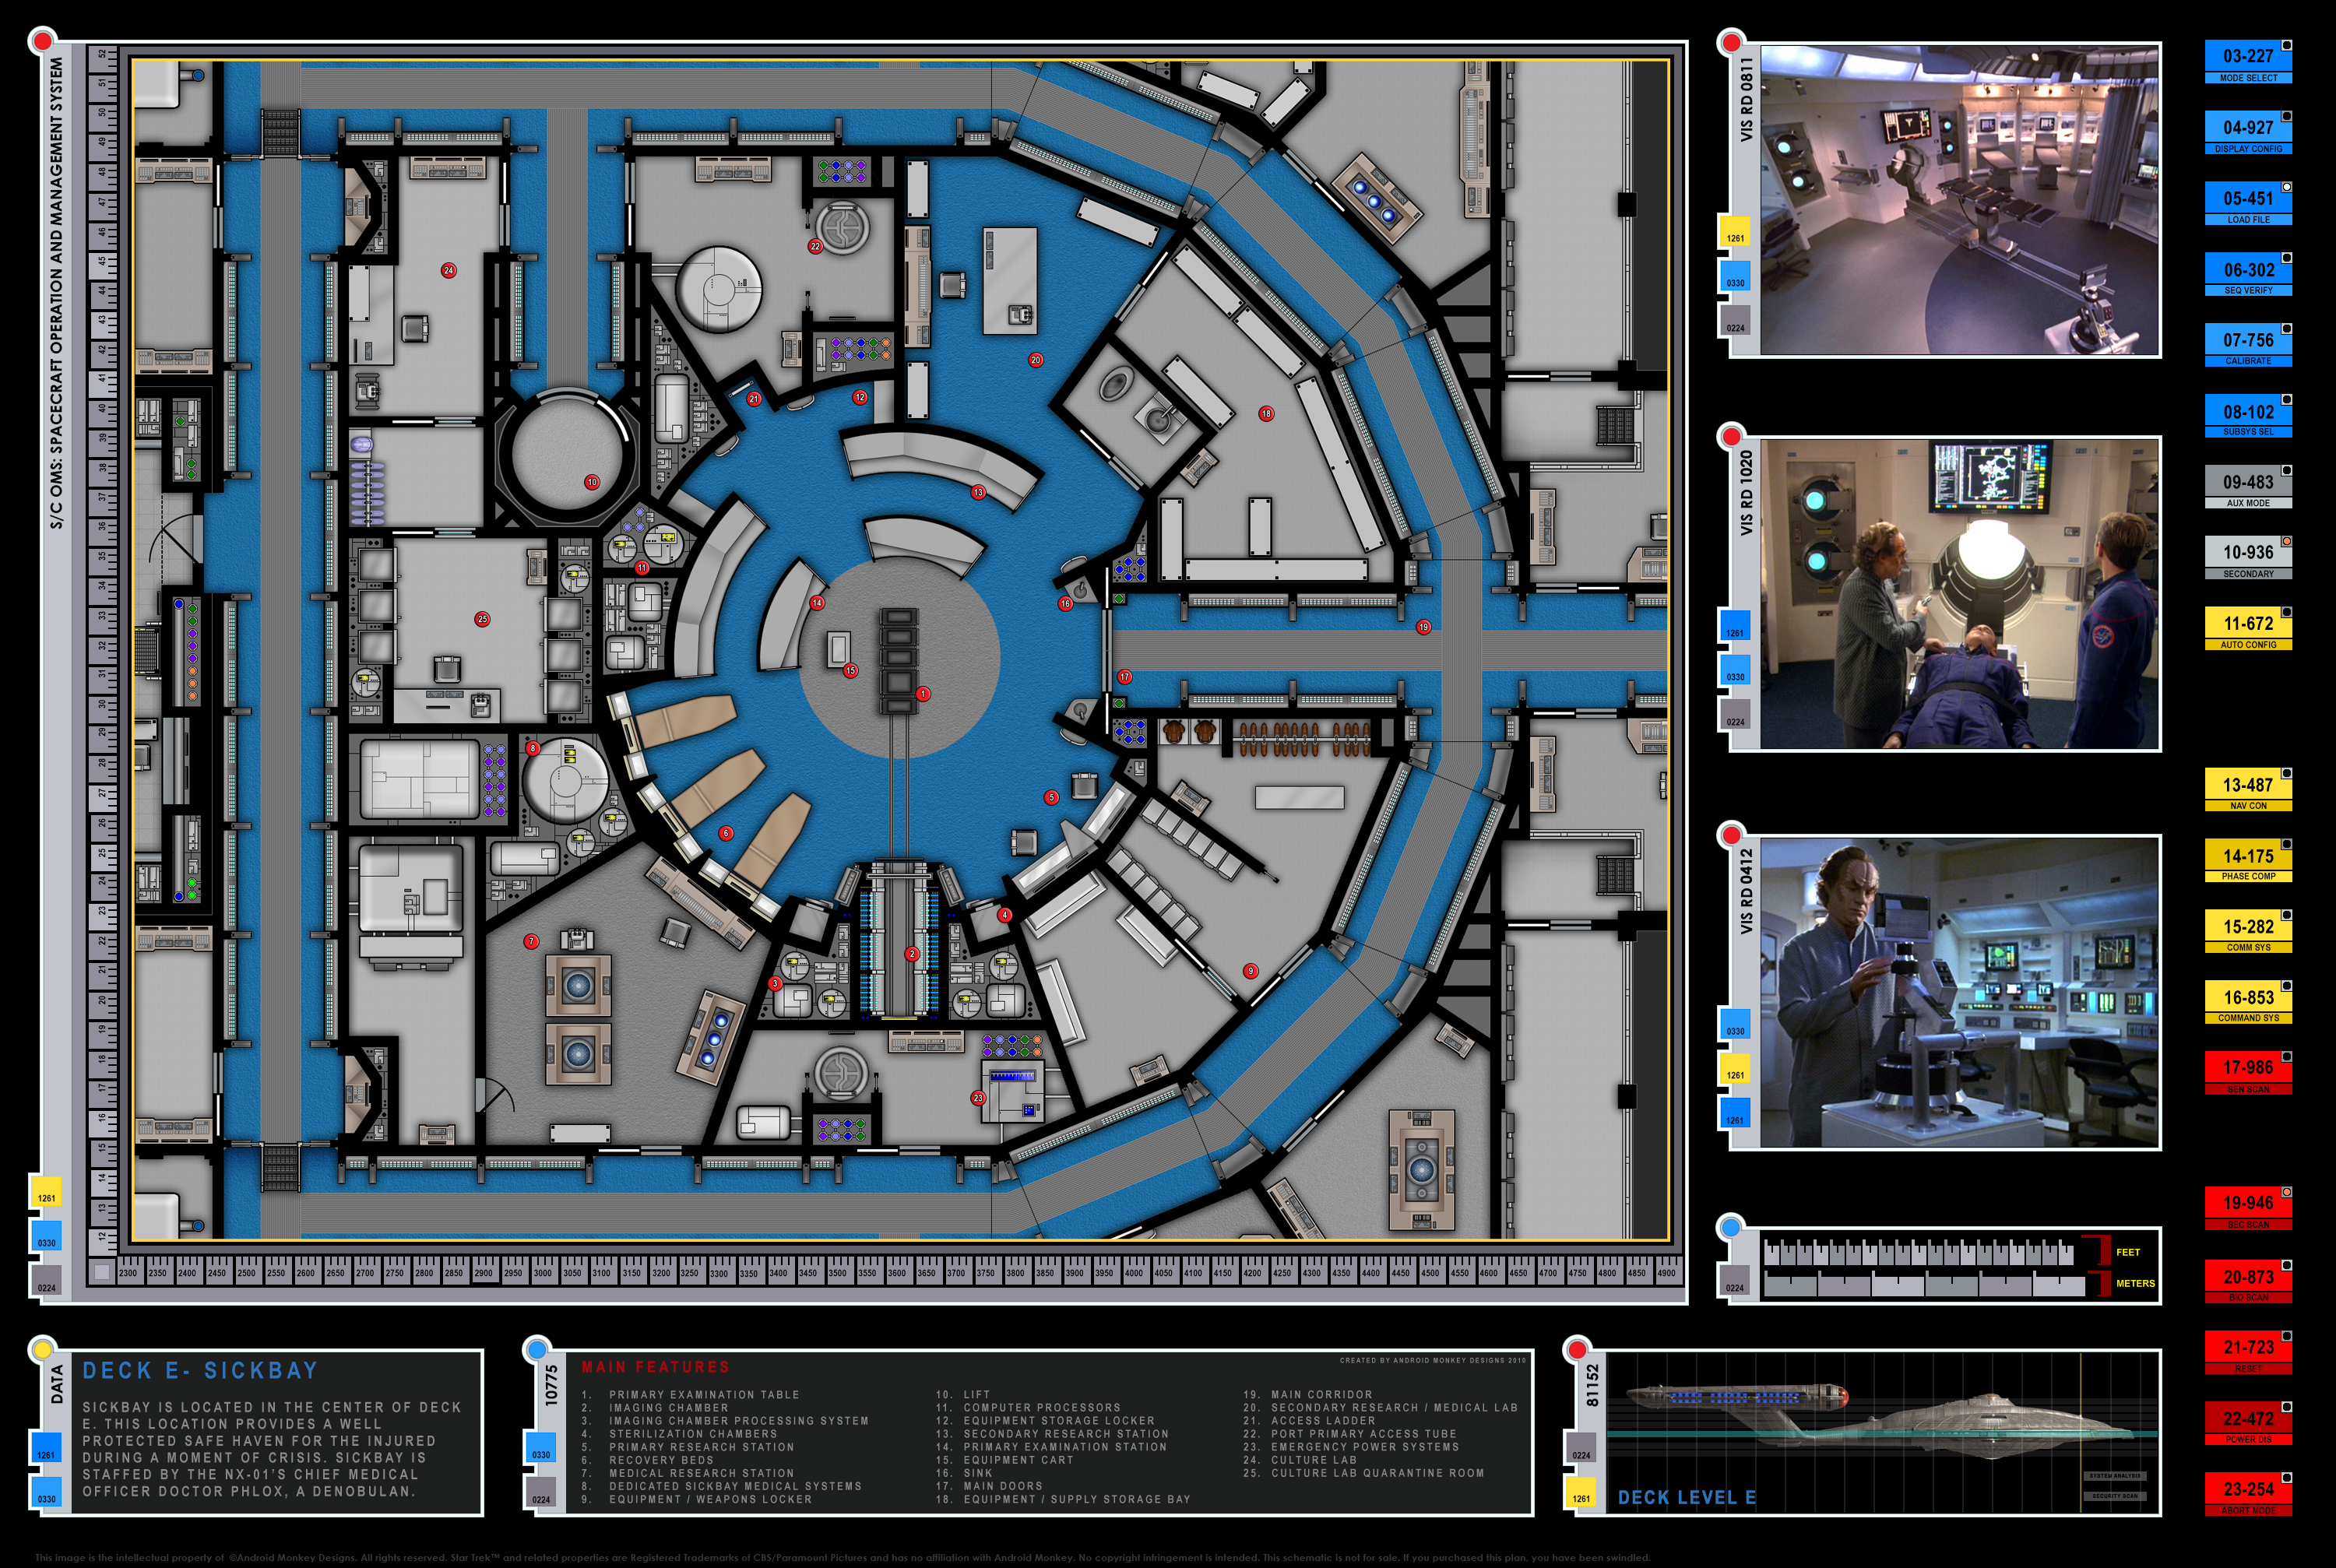 Star Trek Blueprints Enterprise Nx 01 Deck Plans Engineering Schematics